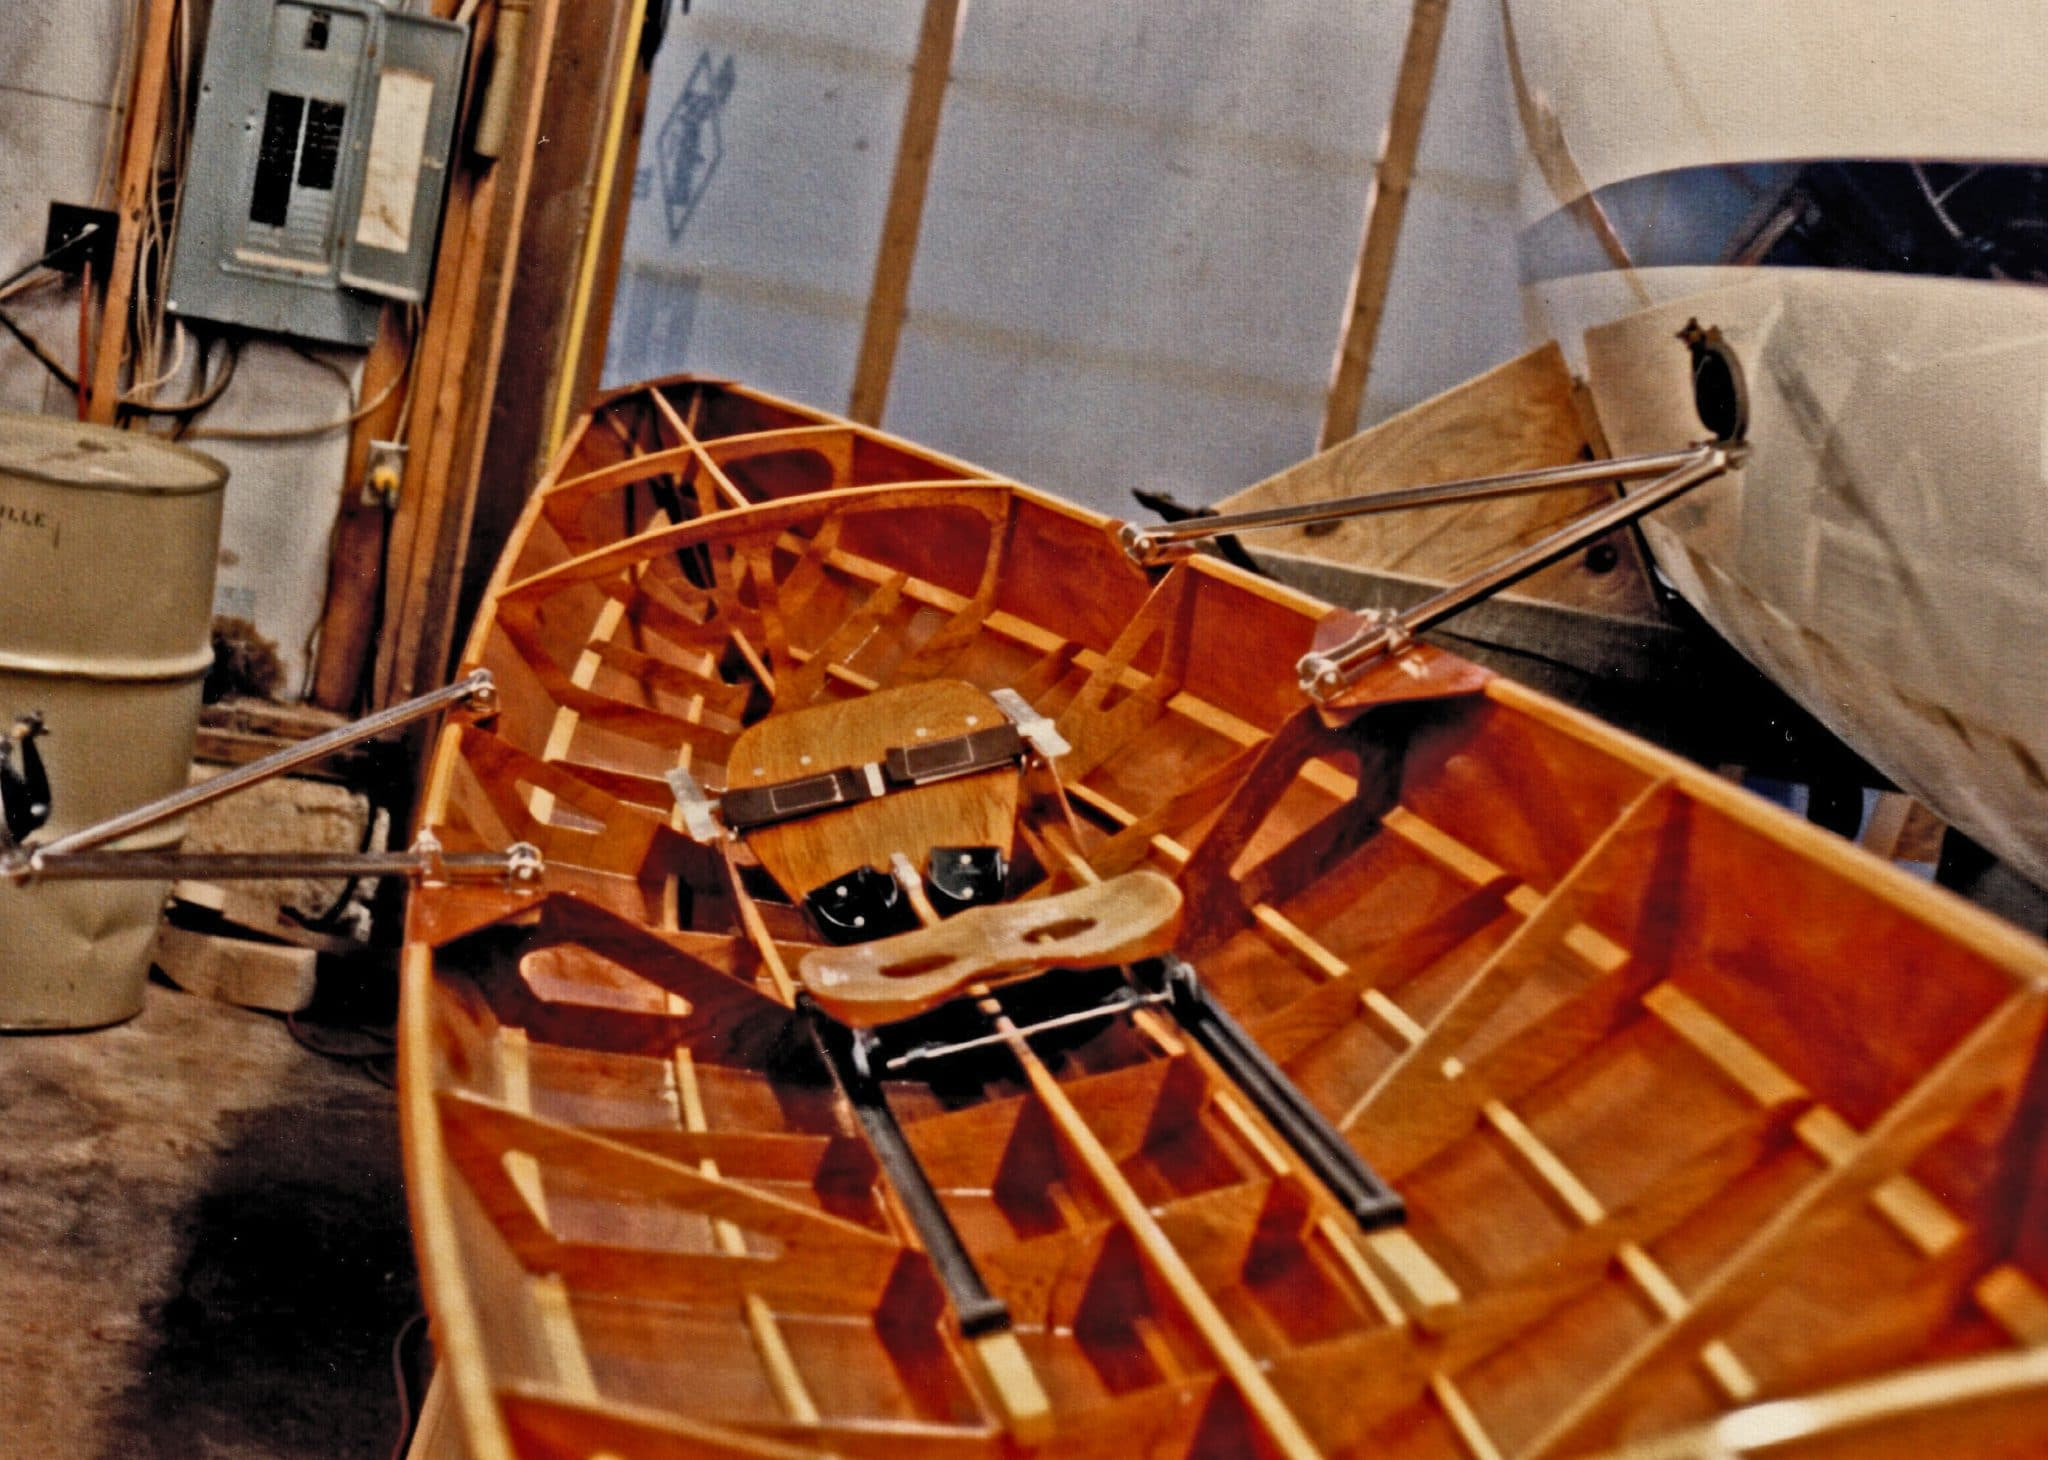 Seating and rowing mechanism in pulling boat